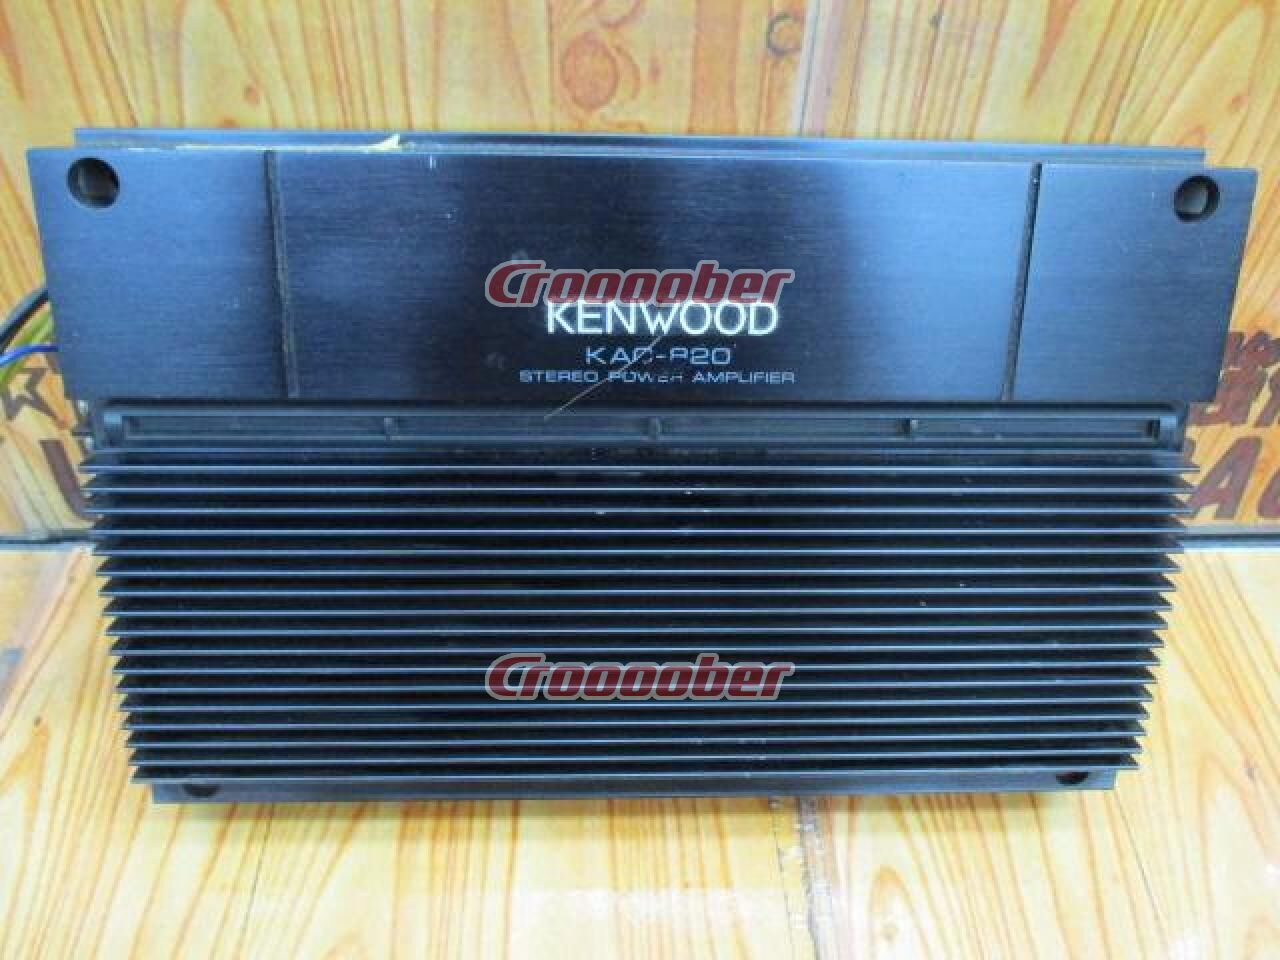 Kenwood Kac 820 Amplifier Croooober